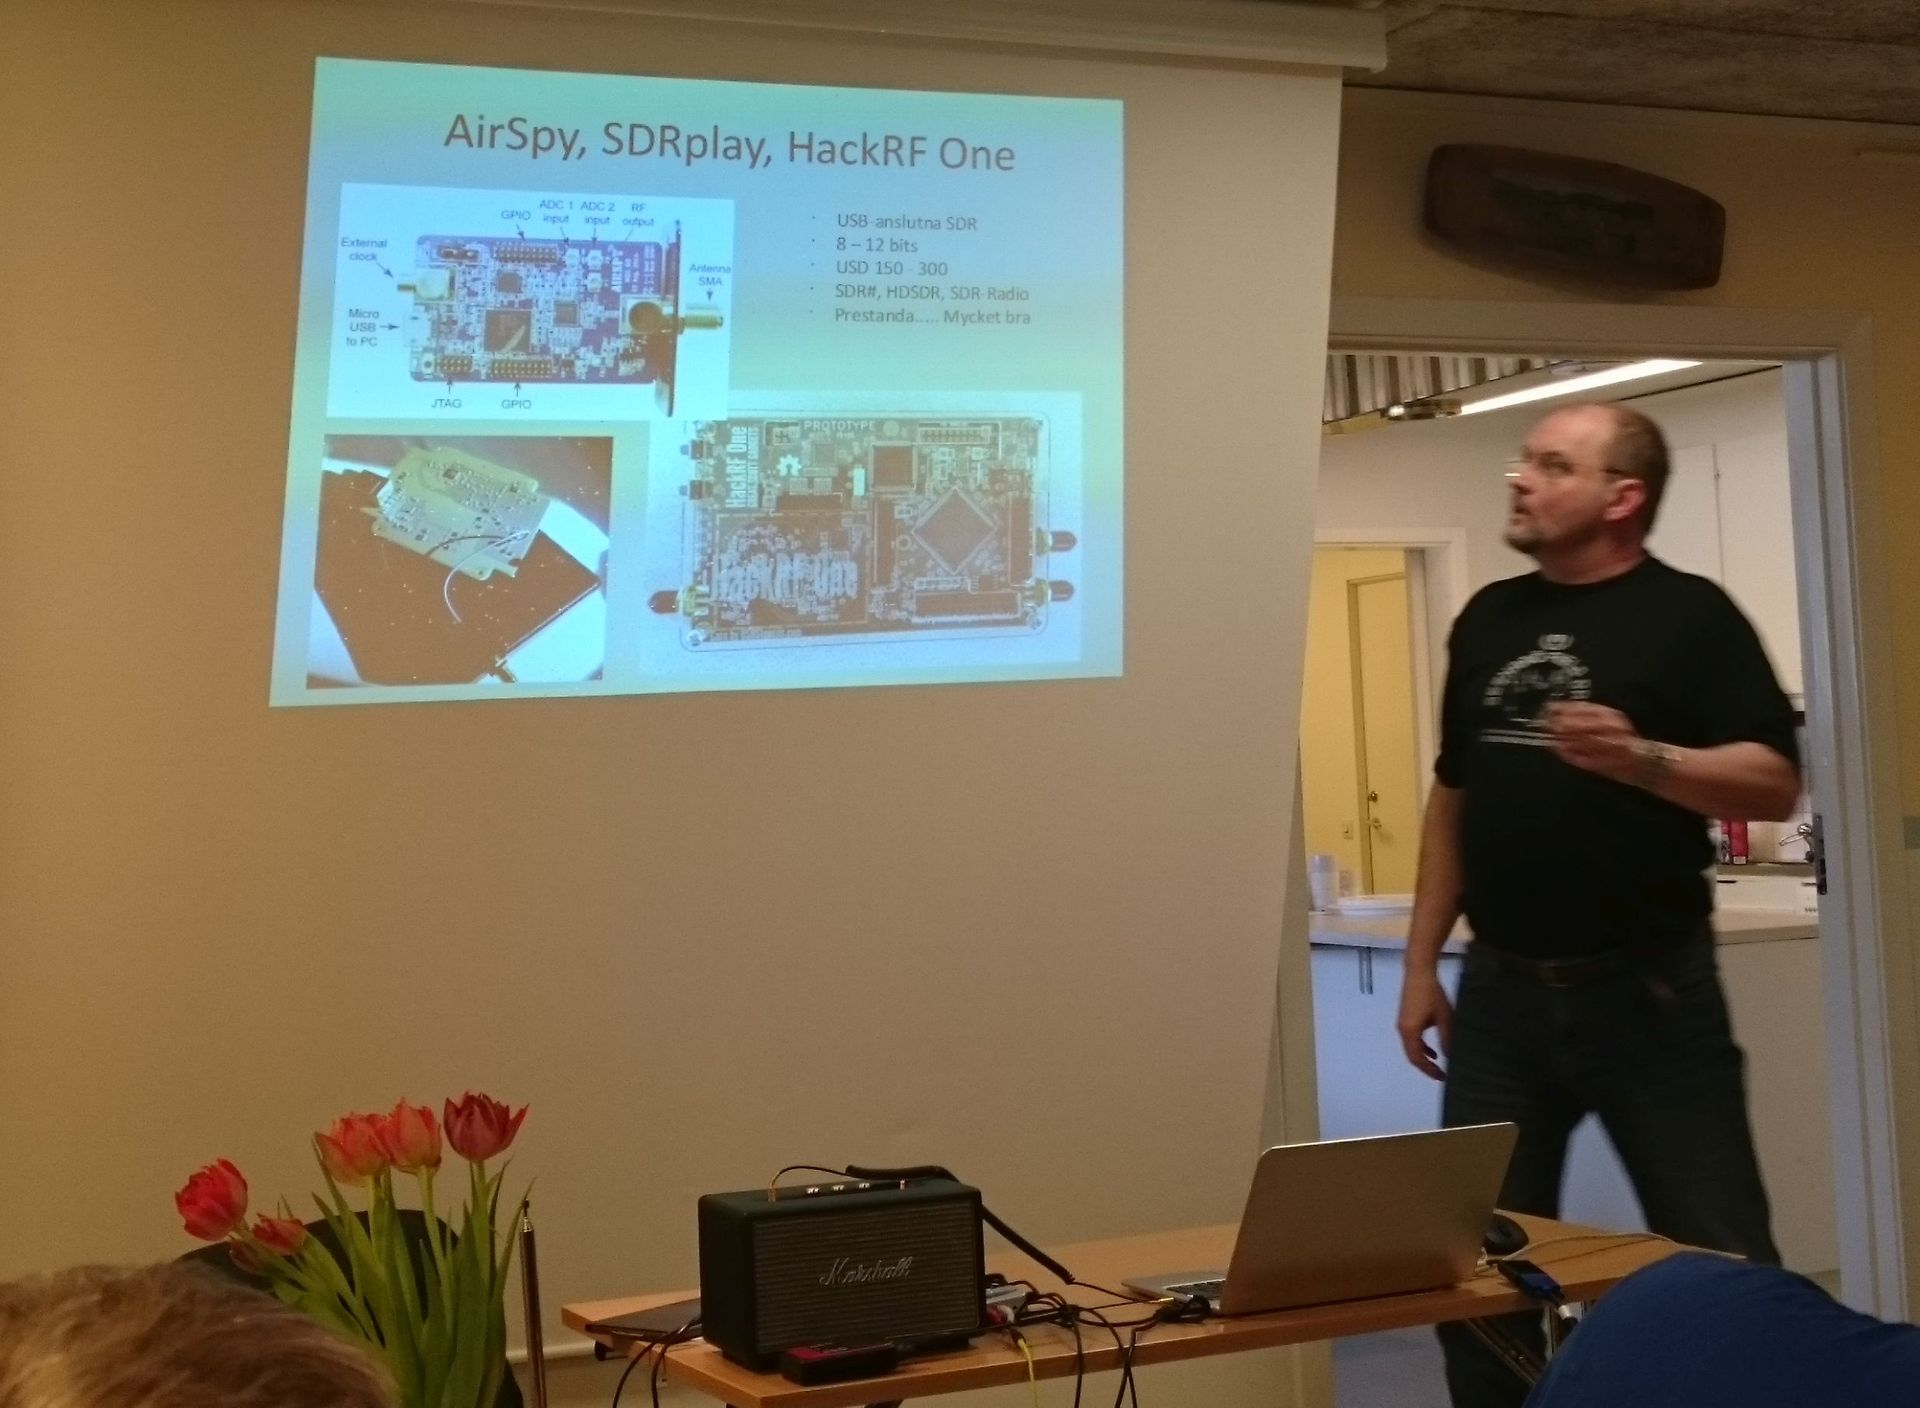 Tilman Thulesius presents different SDR receivers